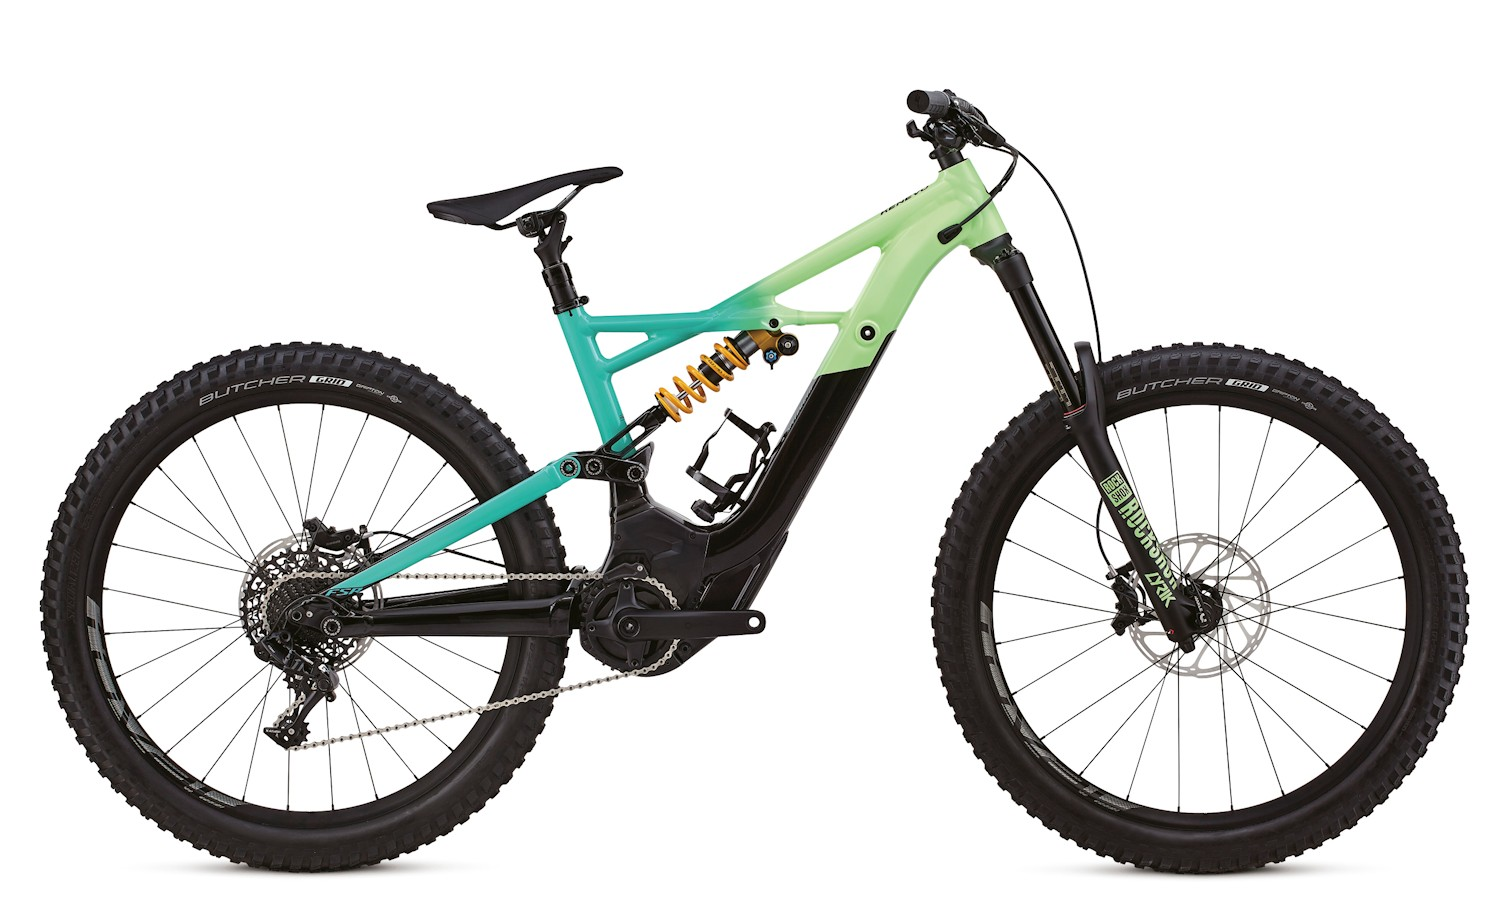 Specialized Kenevo Expert 6-Fattie